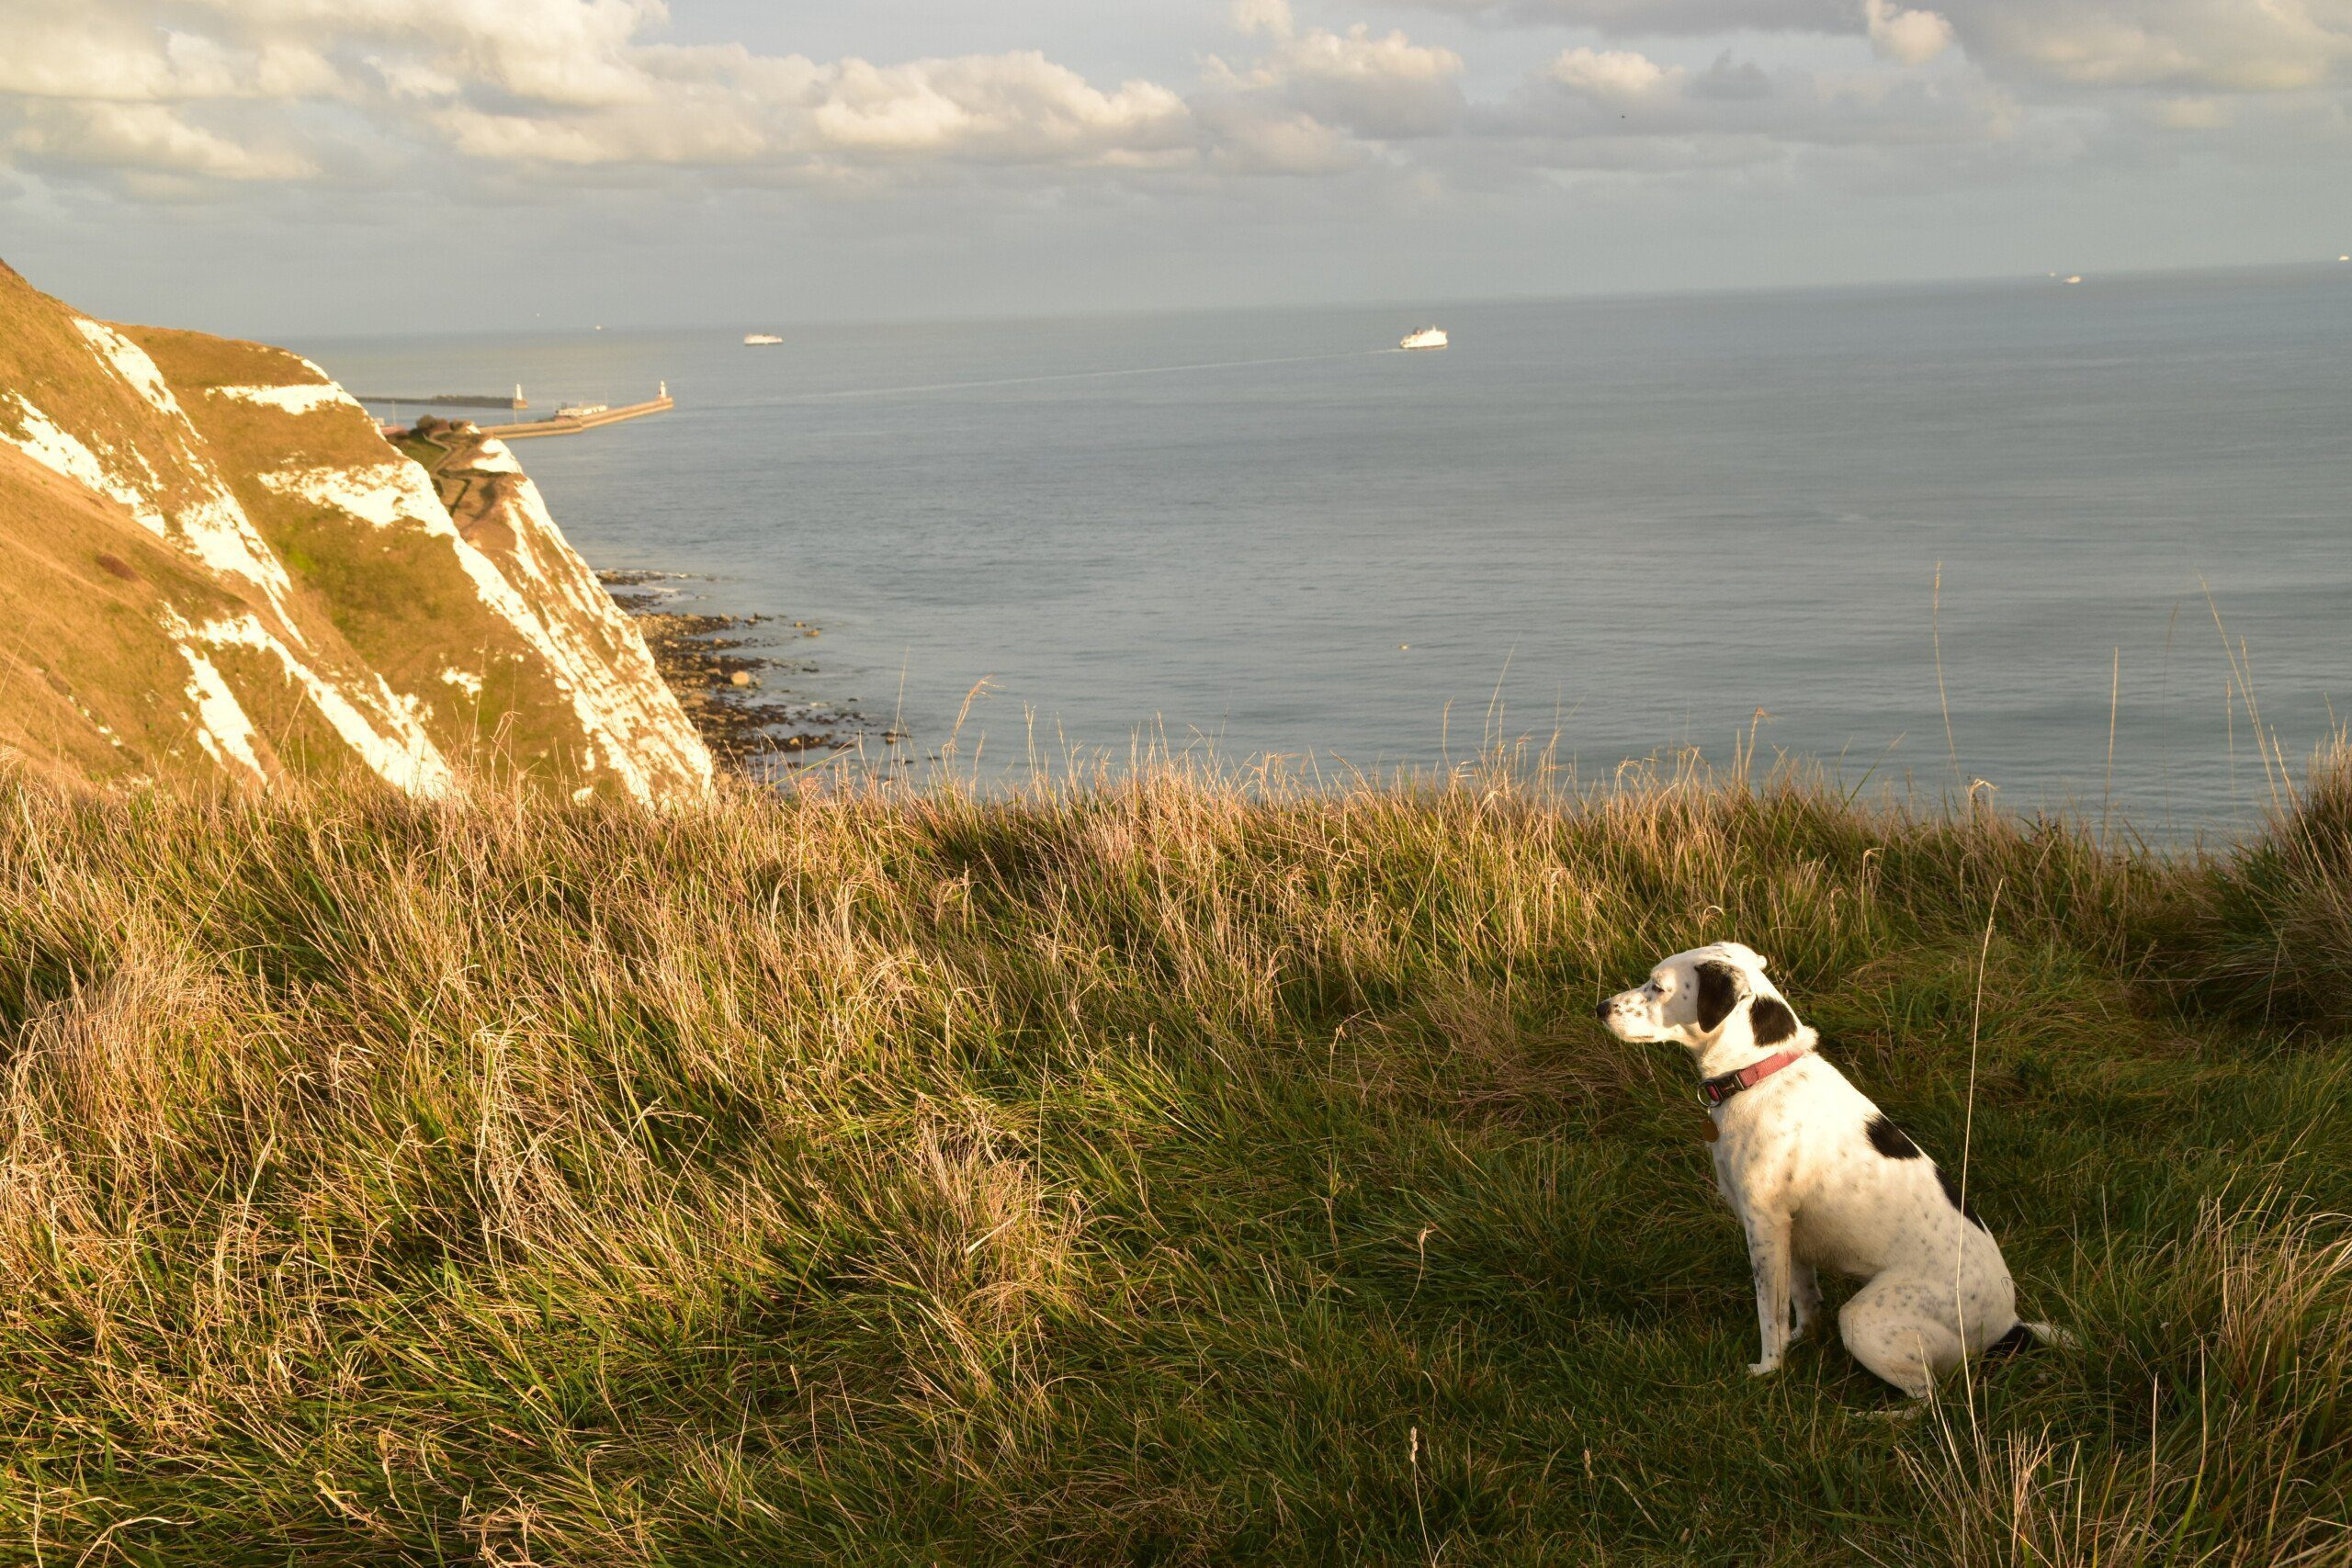 Daisy on the White Cliffs of Dover